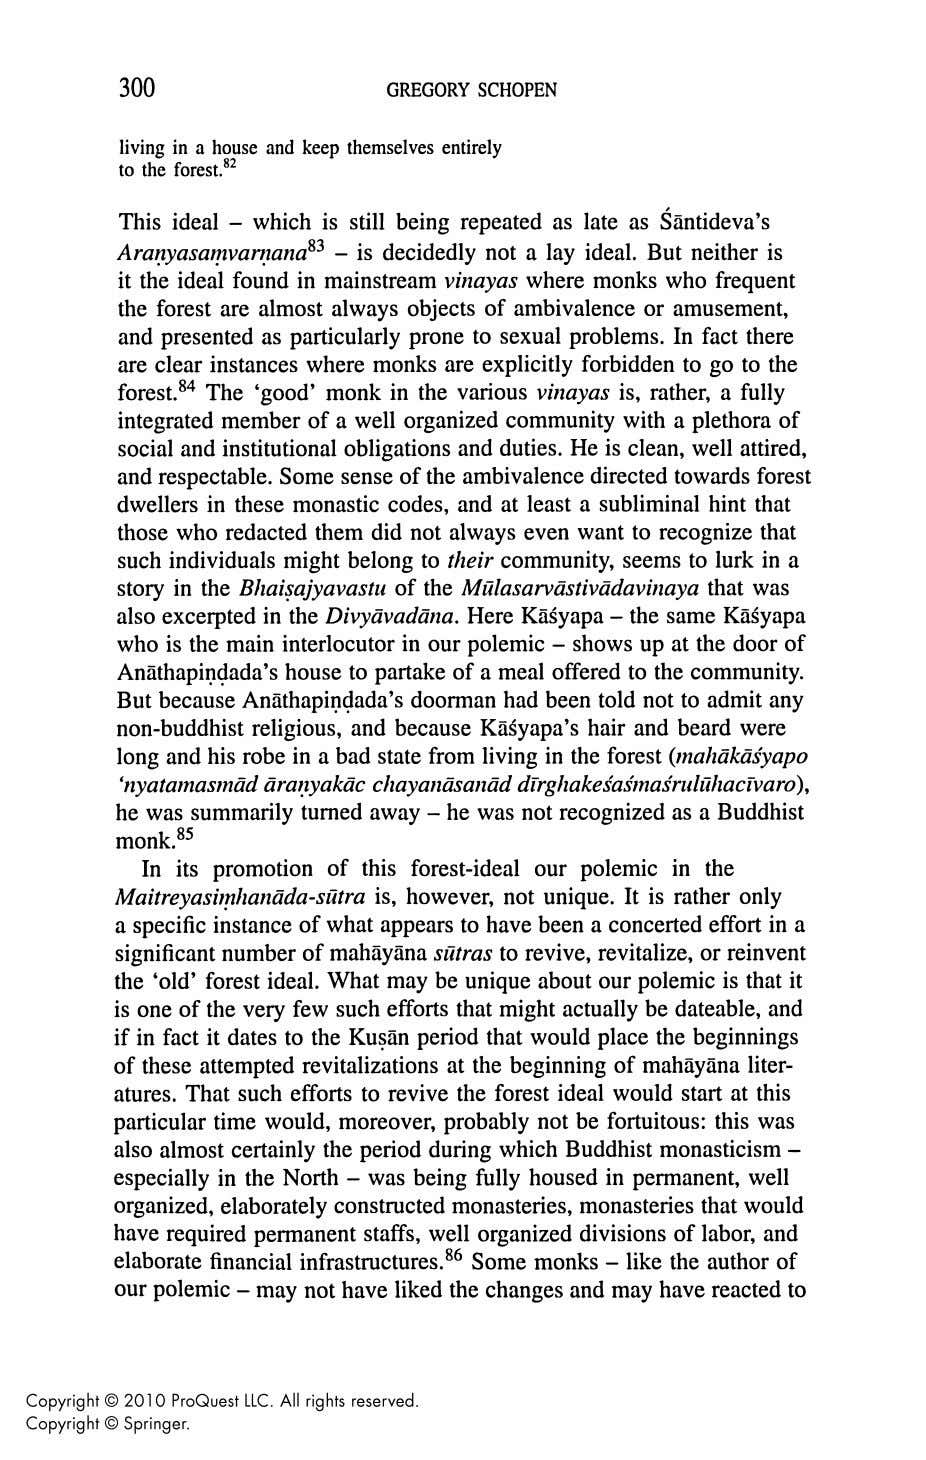 Conservative Monastic Values in an Early Mahayana Polemical Tract , Journal of Indian Philosophy, 27:4 (1999:Aug.)